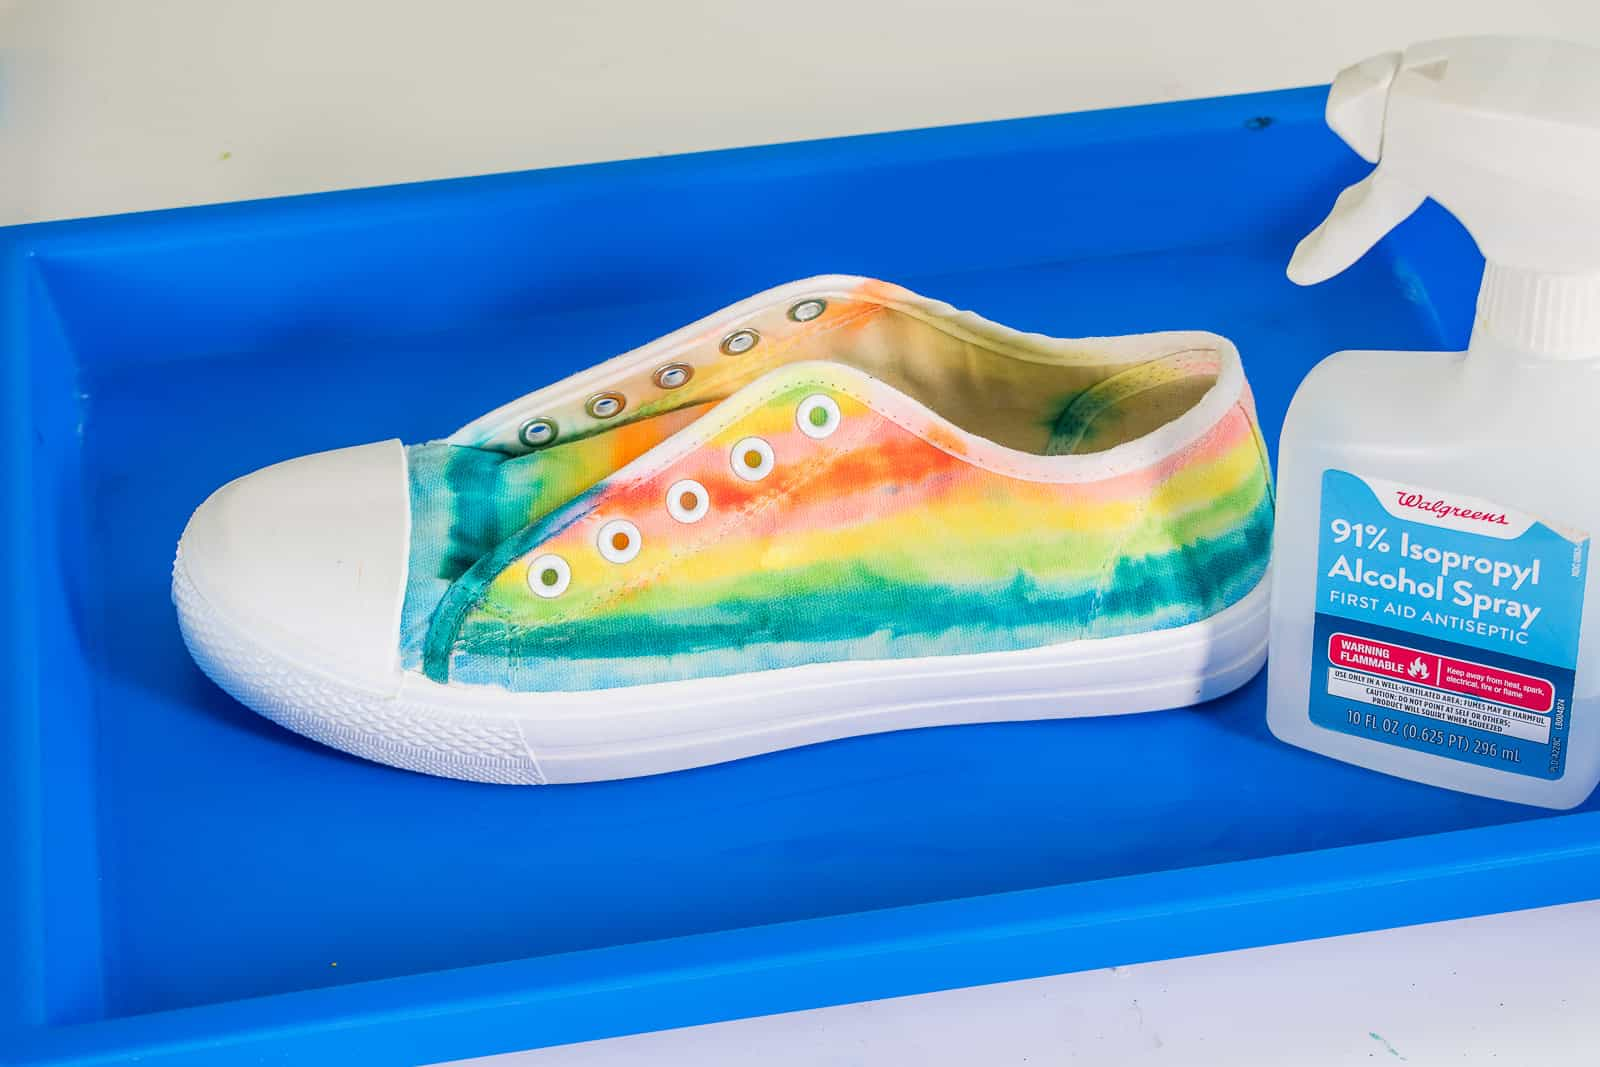 shoes sprayed with rubbing alcohol